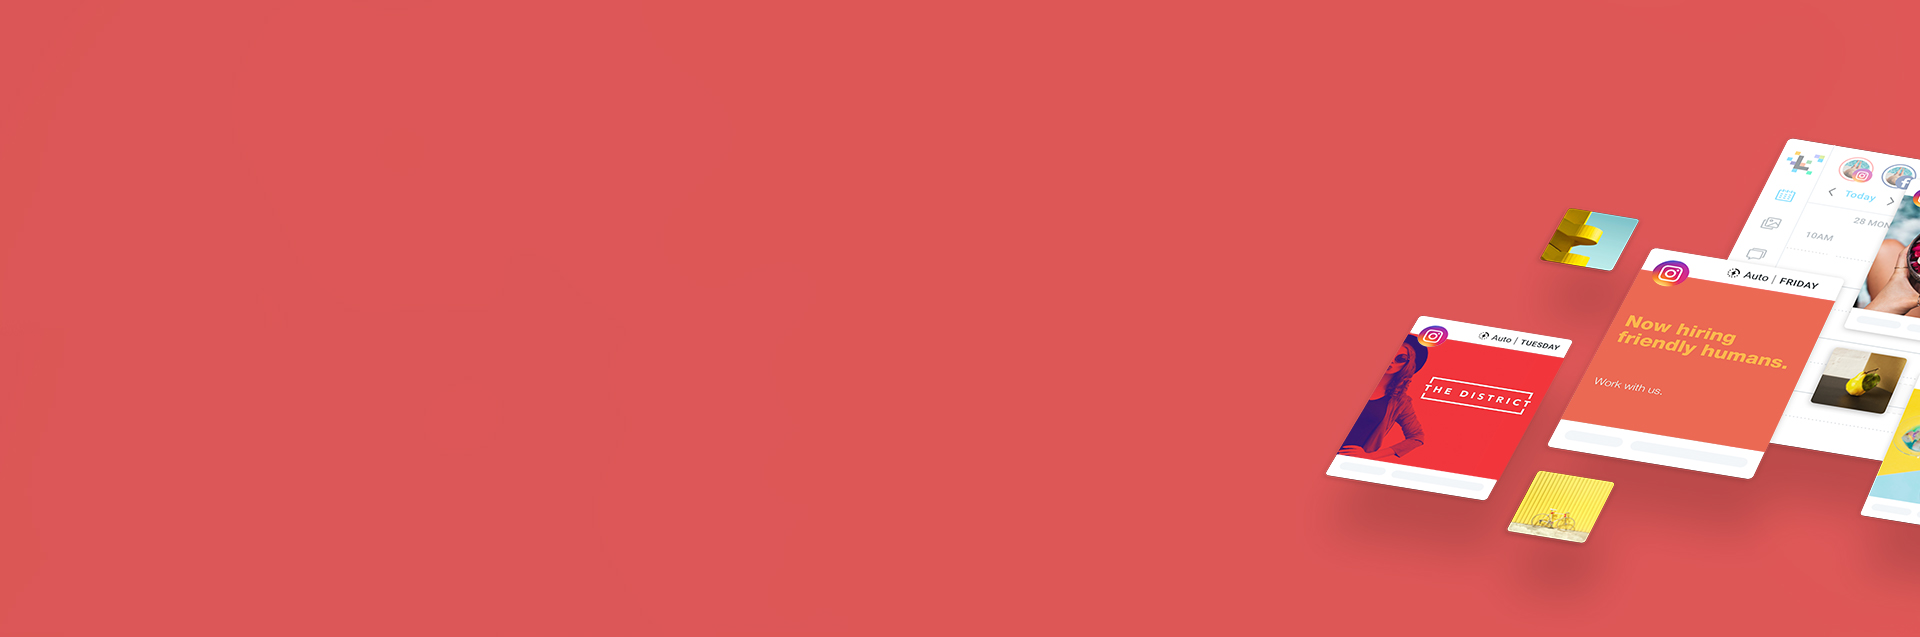 Red Background Header for Social Media Strategy, with floating social posts